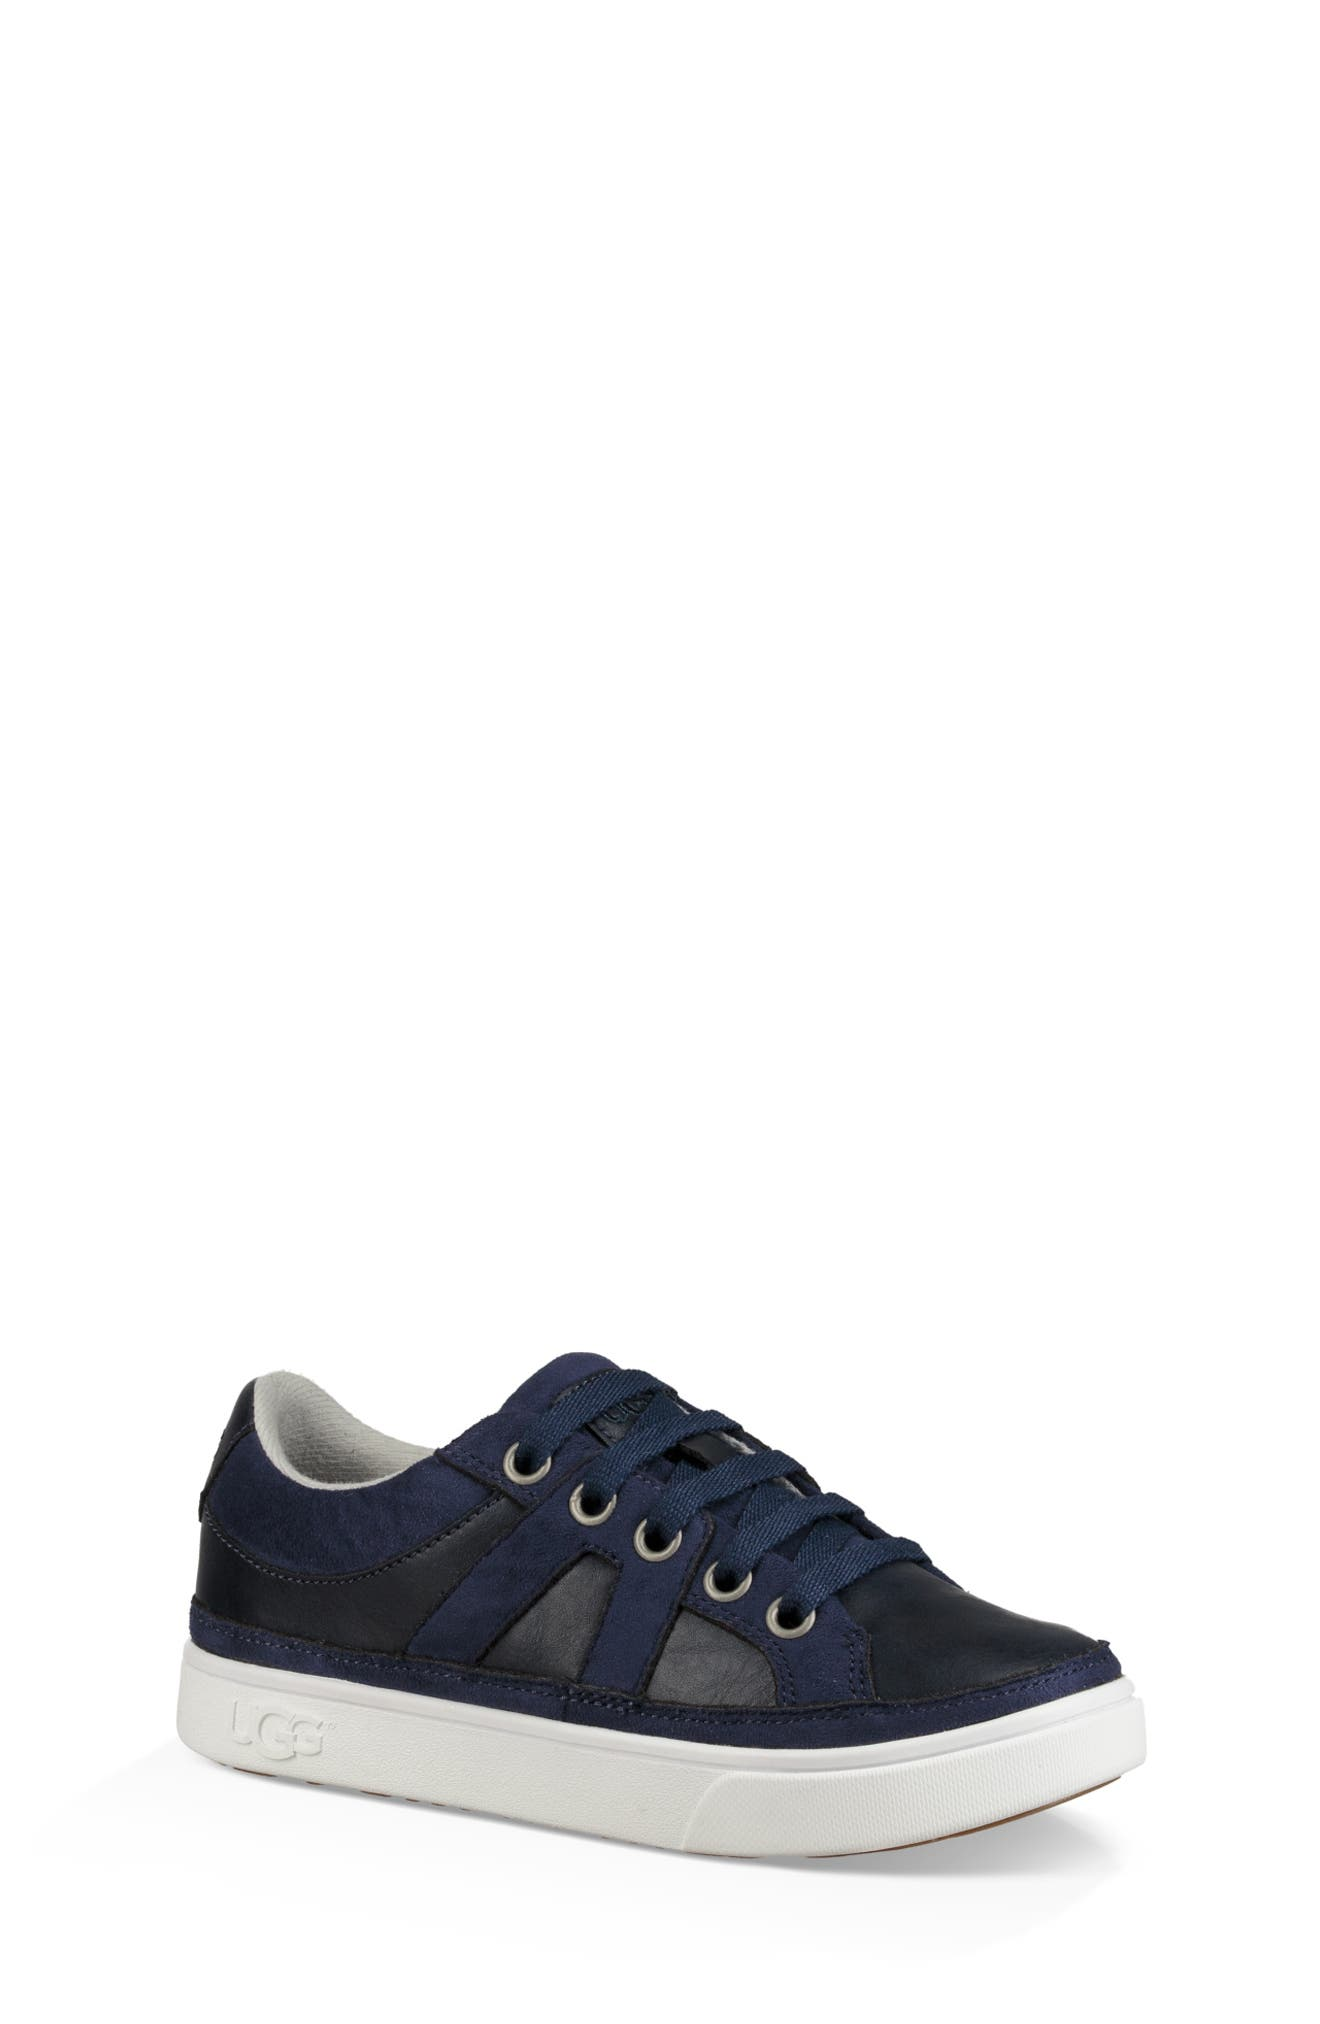 Marcus Sneaker,                         Main,                         color, NAVY